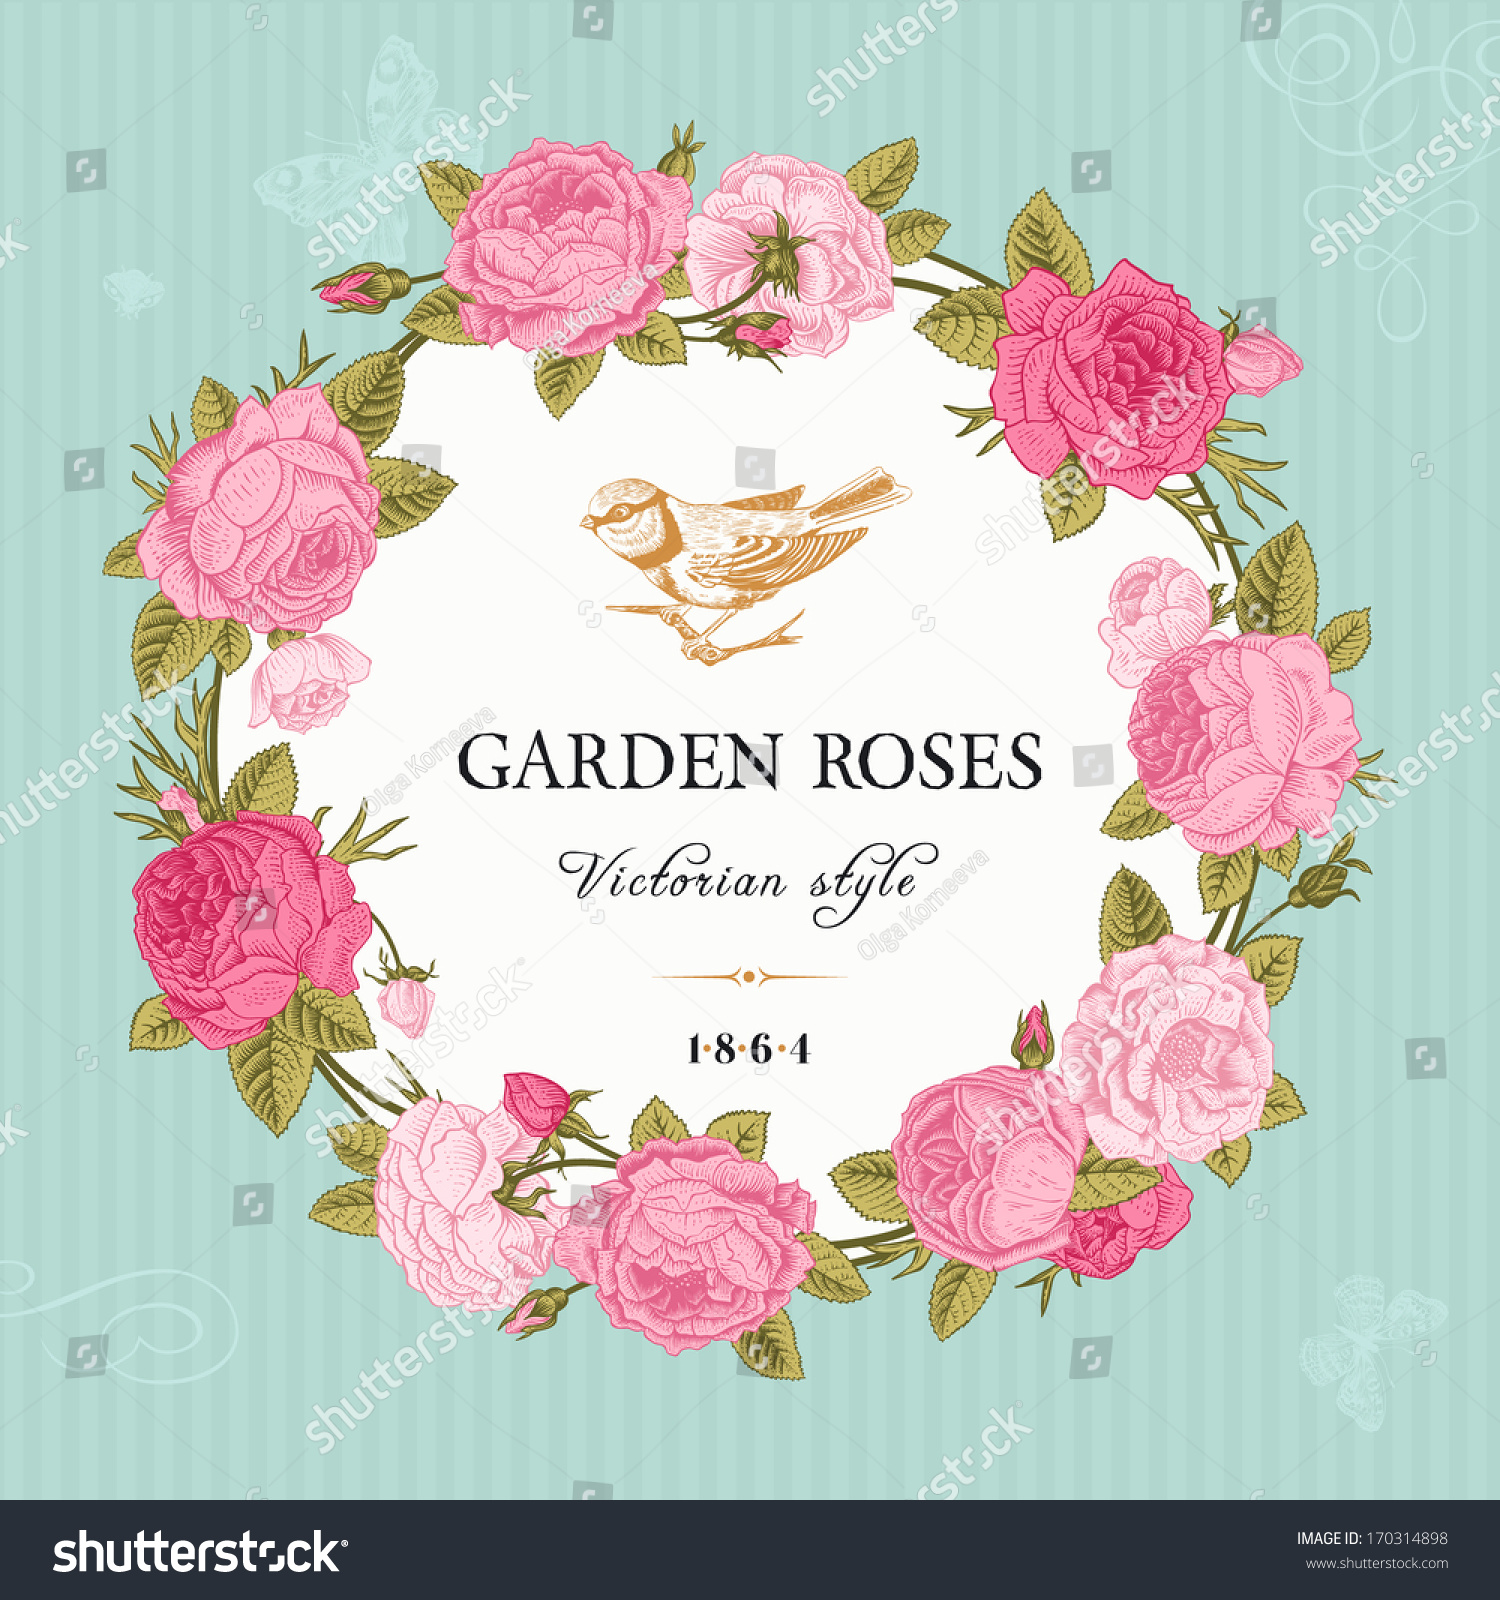 English rose garden wallpaper - Round Frame Of Pink Garden Roses On Mint Background Victorian Style